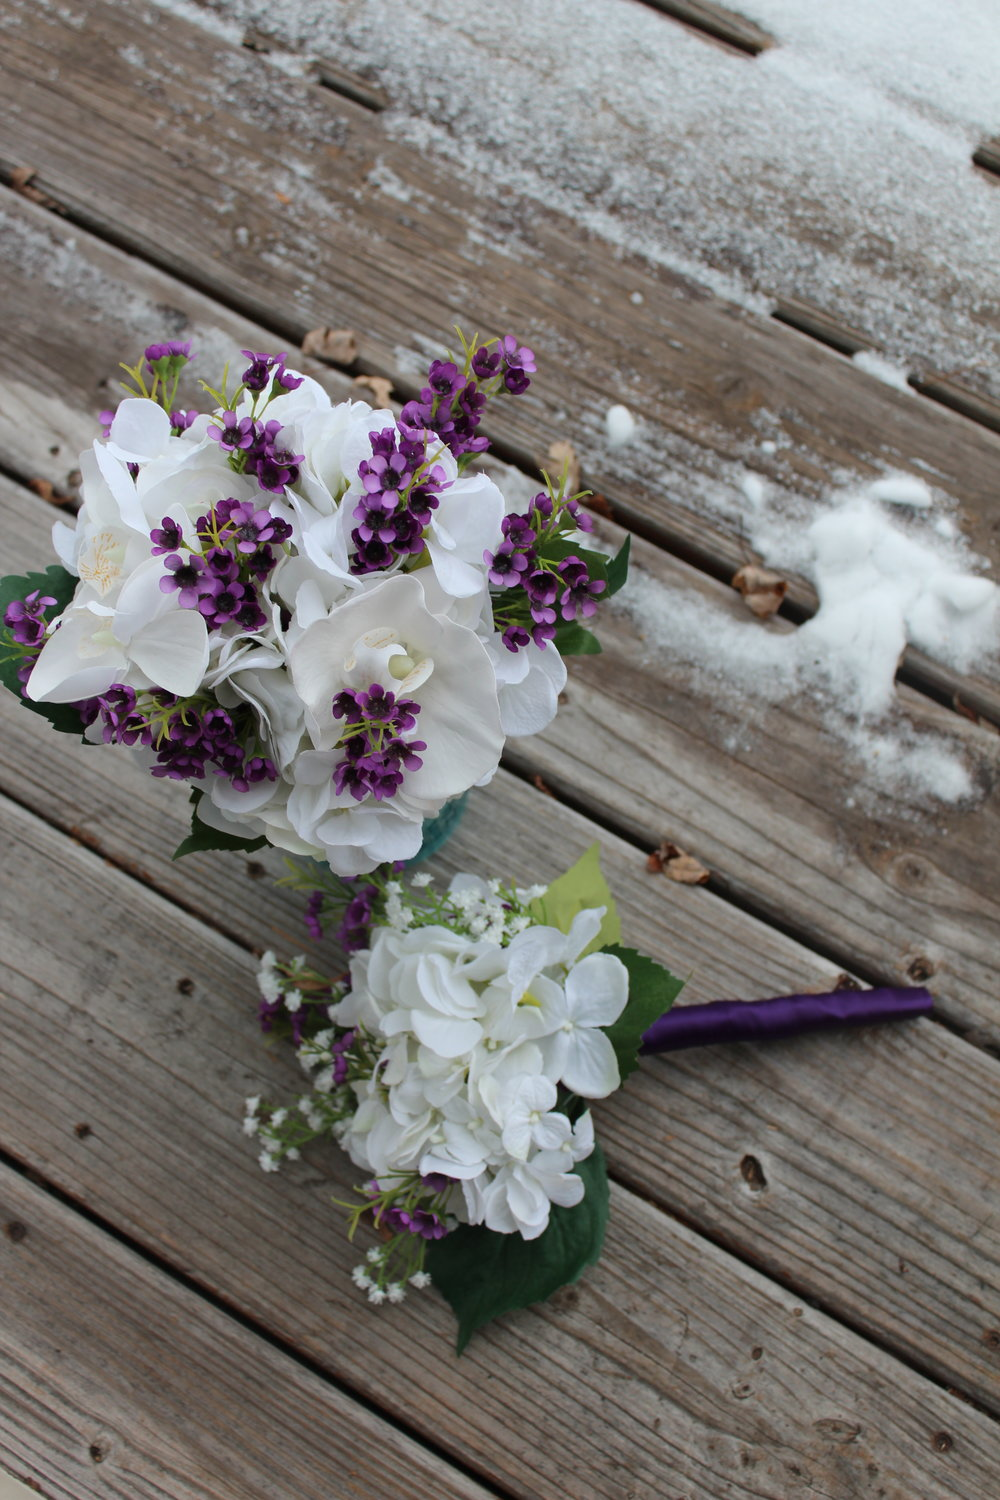 Bridesmaid Bouquet: Hydrangea, Waxflower. Toss Bouquet: Hydrangea, Waxflower, Baby's Breath.